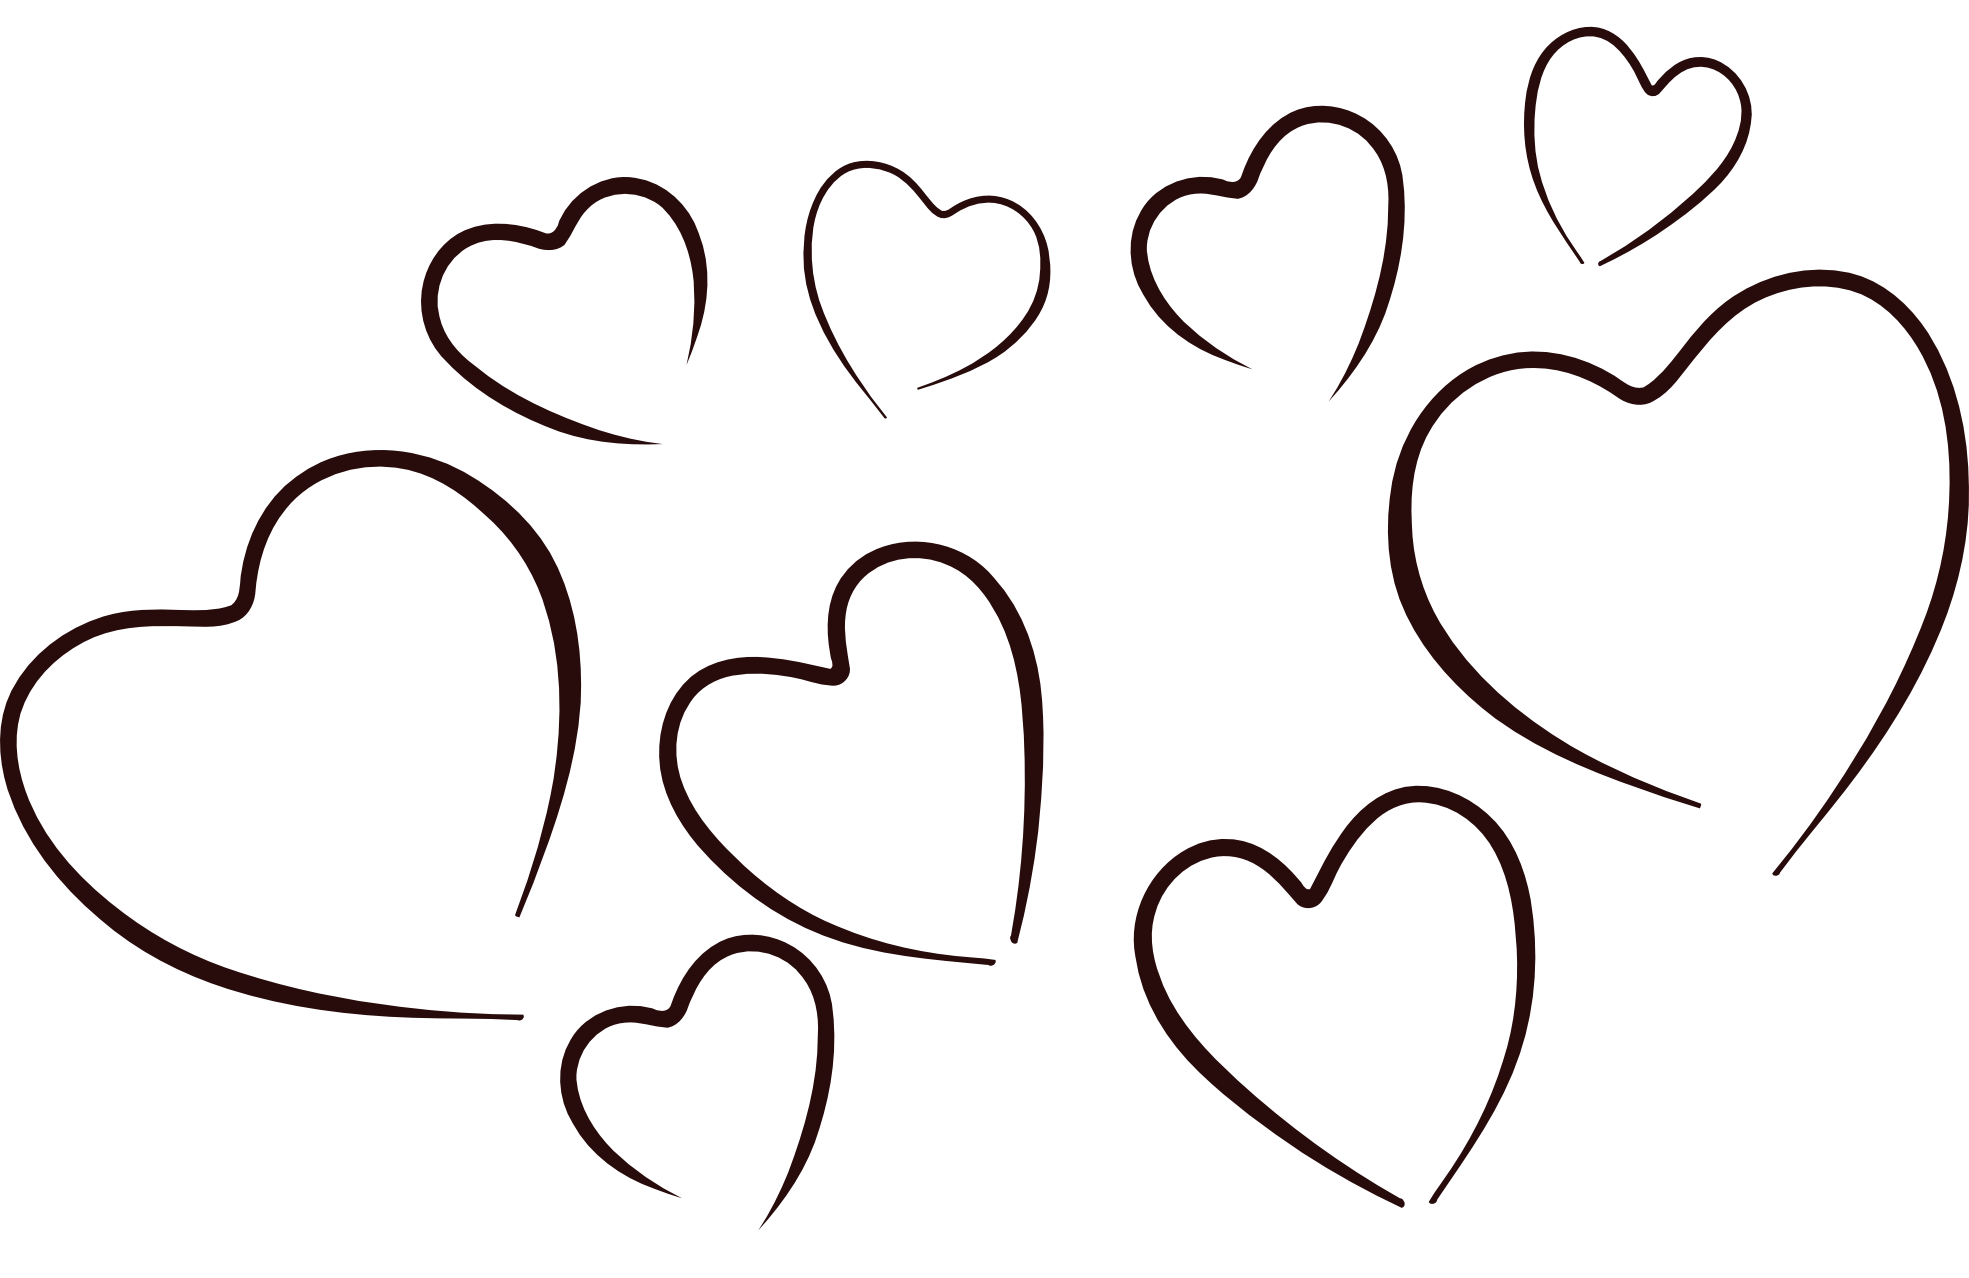 Heartbeat Line Art : Clip art heart black and white clipart panda free